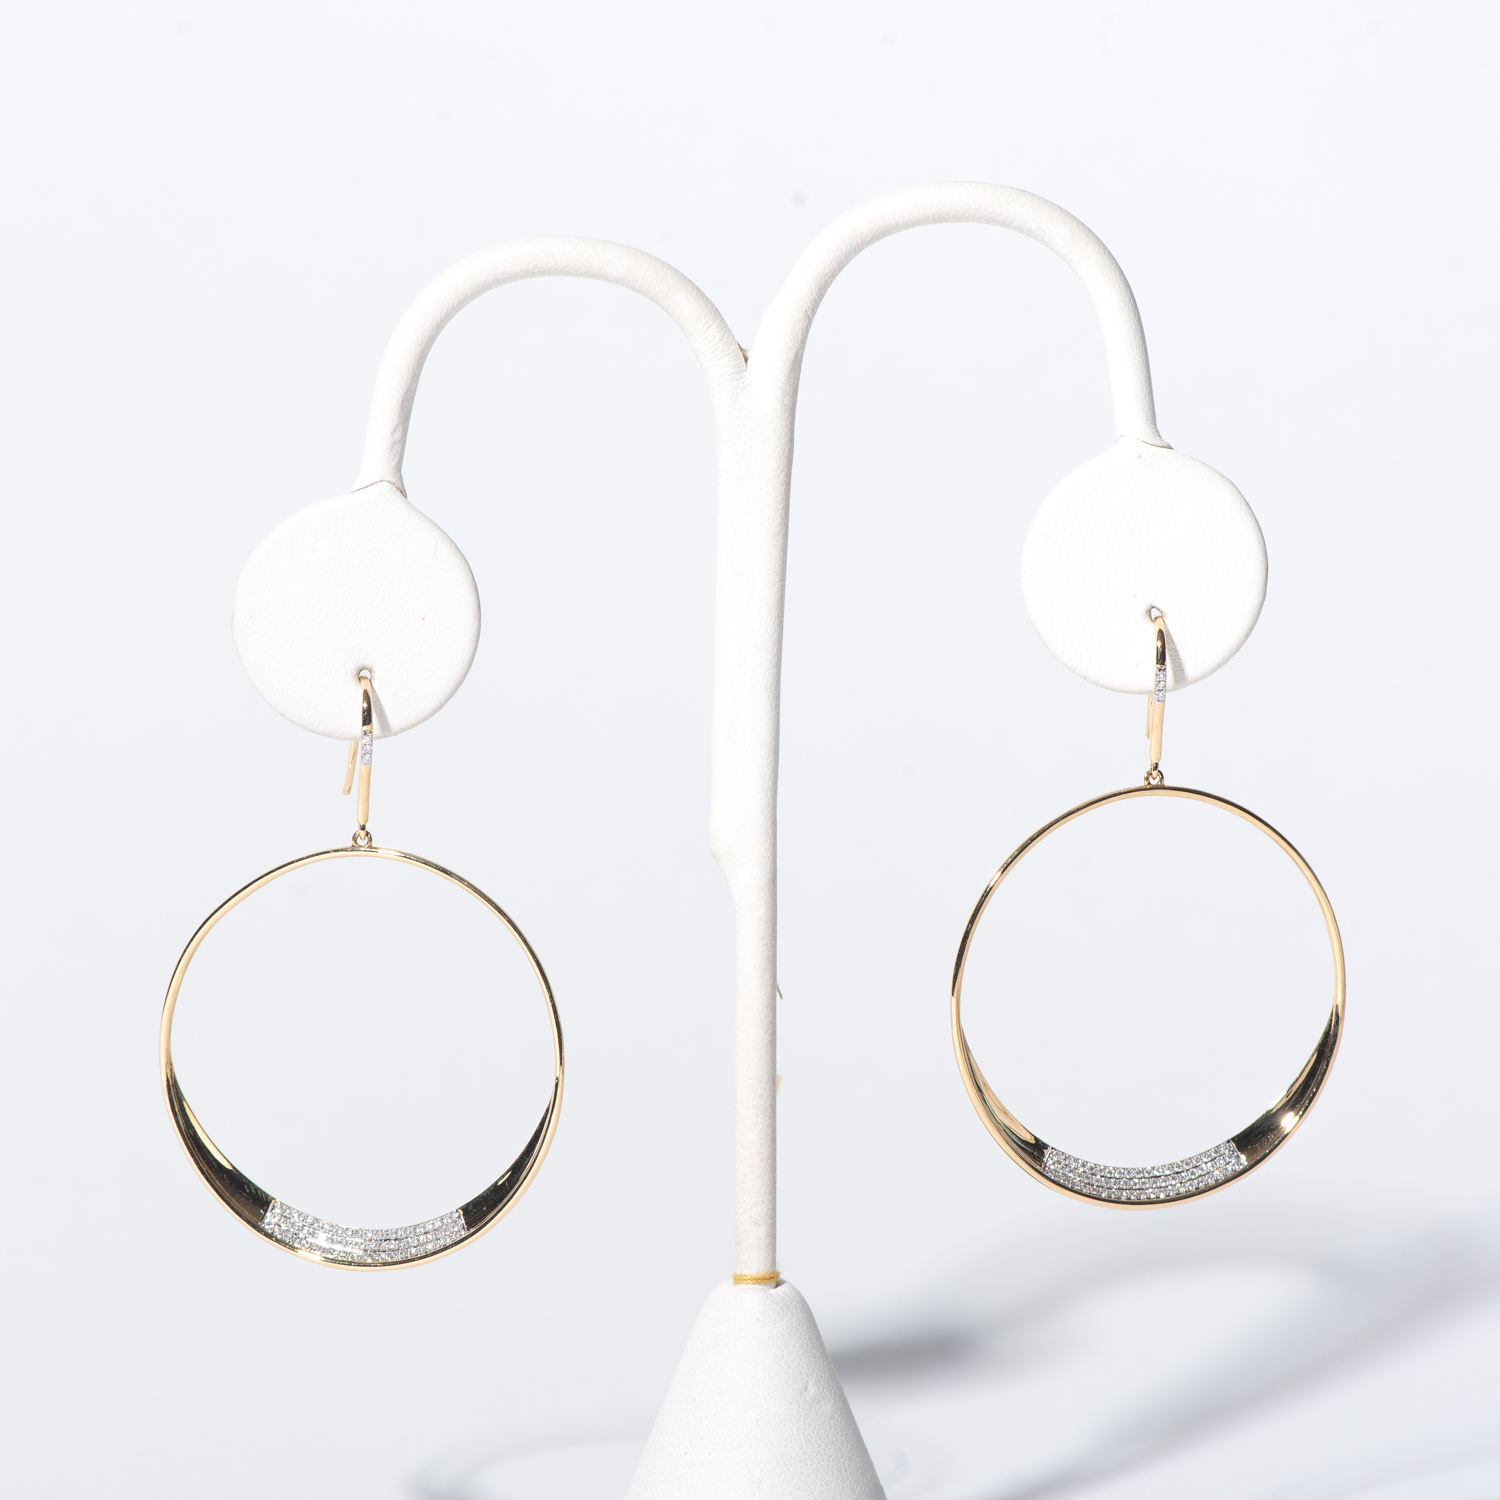 Design Thirteen. - This is dummy text to describe the earrings.